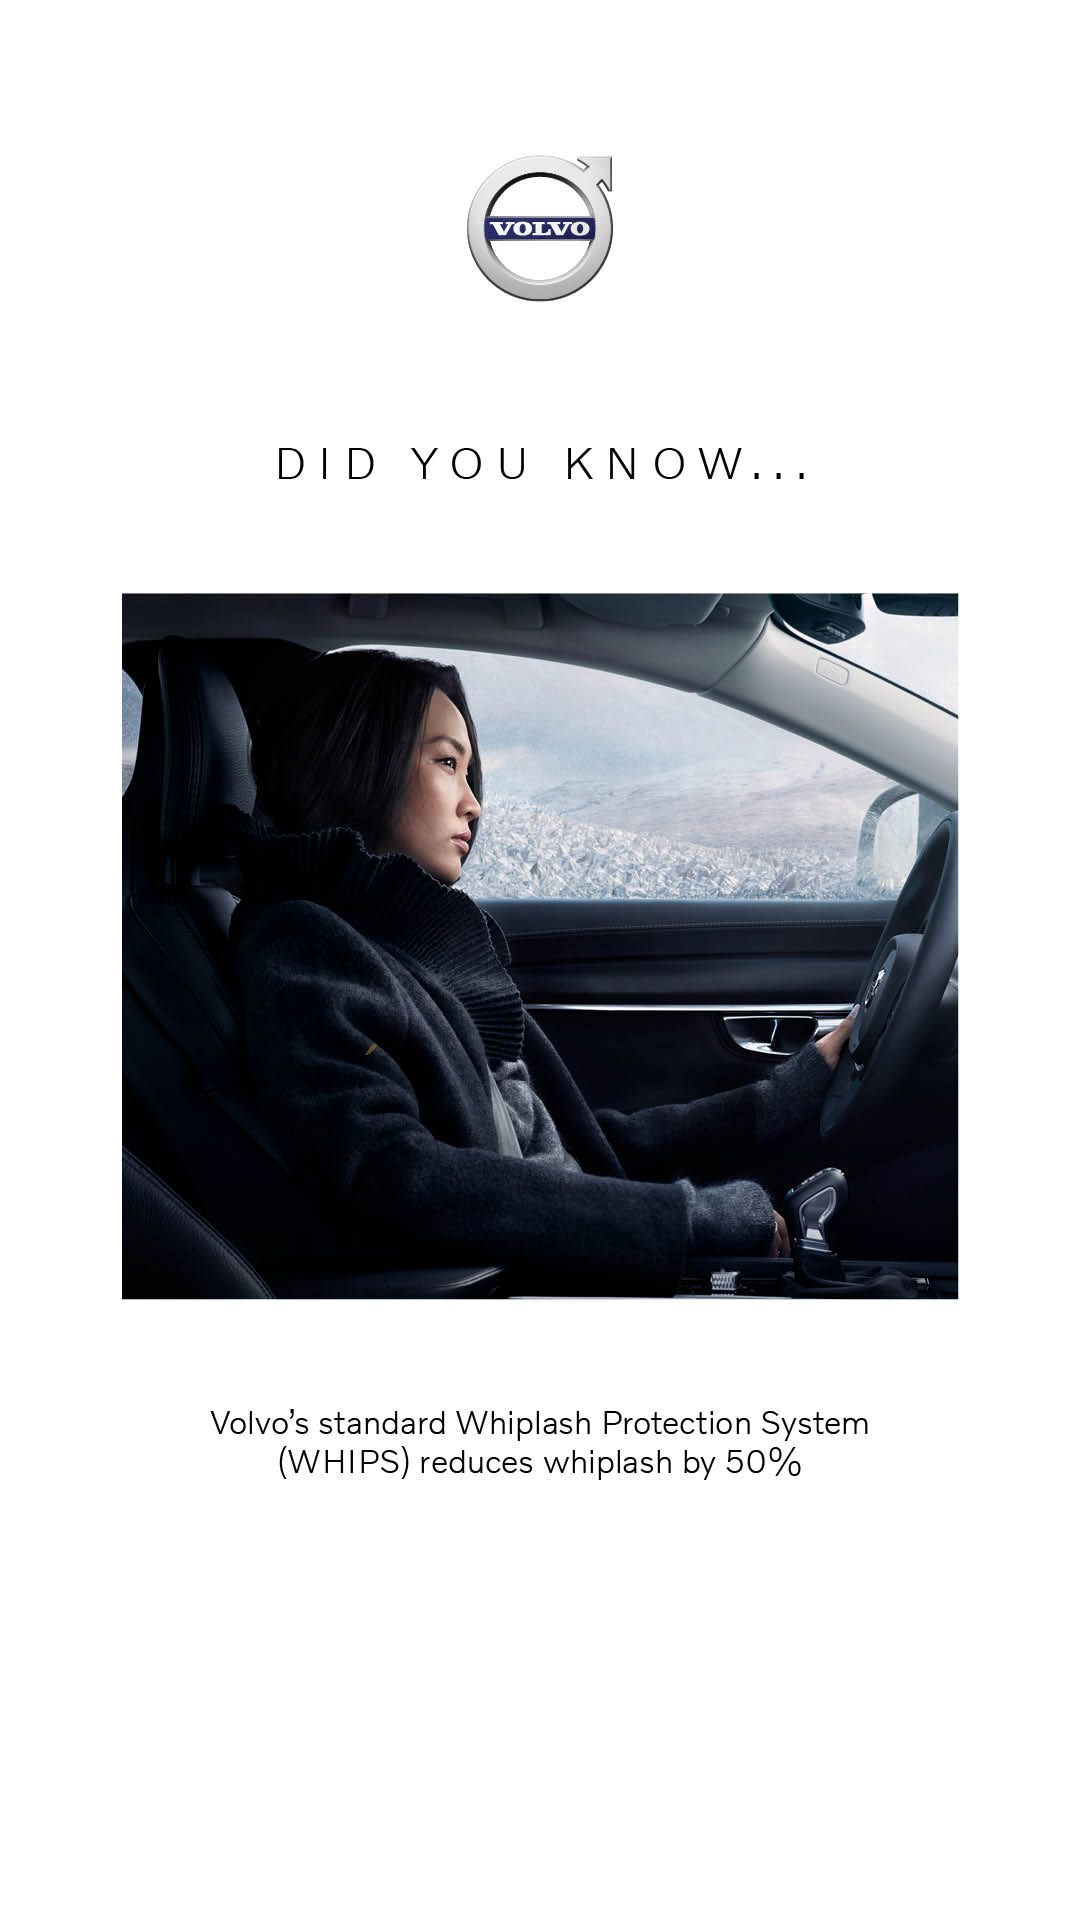 Volvo standard Whiplash Protection System (WHIPS) reduces